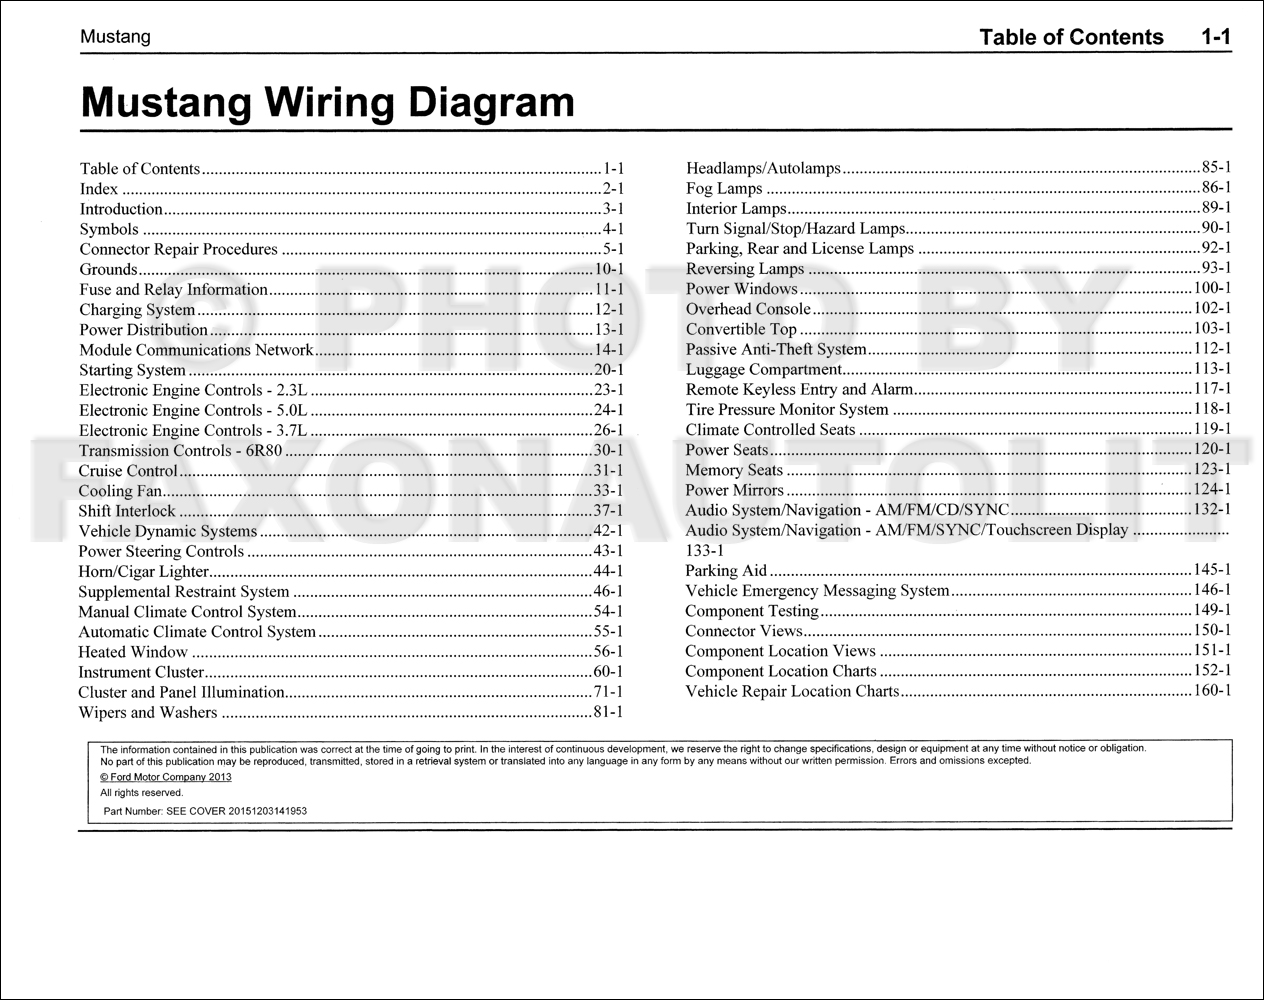 2001 mustang gt radio wiring diagram images ford mustang ignition ford mustang ignition wiring diagram nilzamustangcar